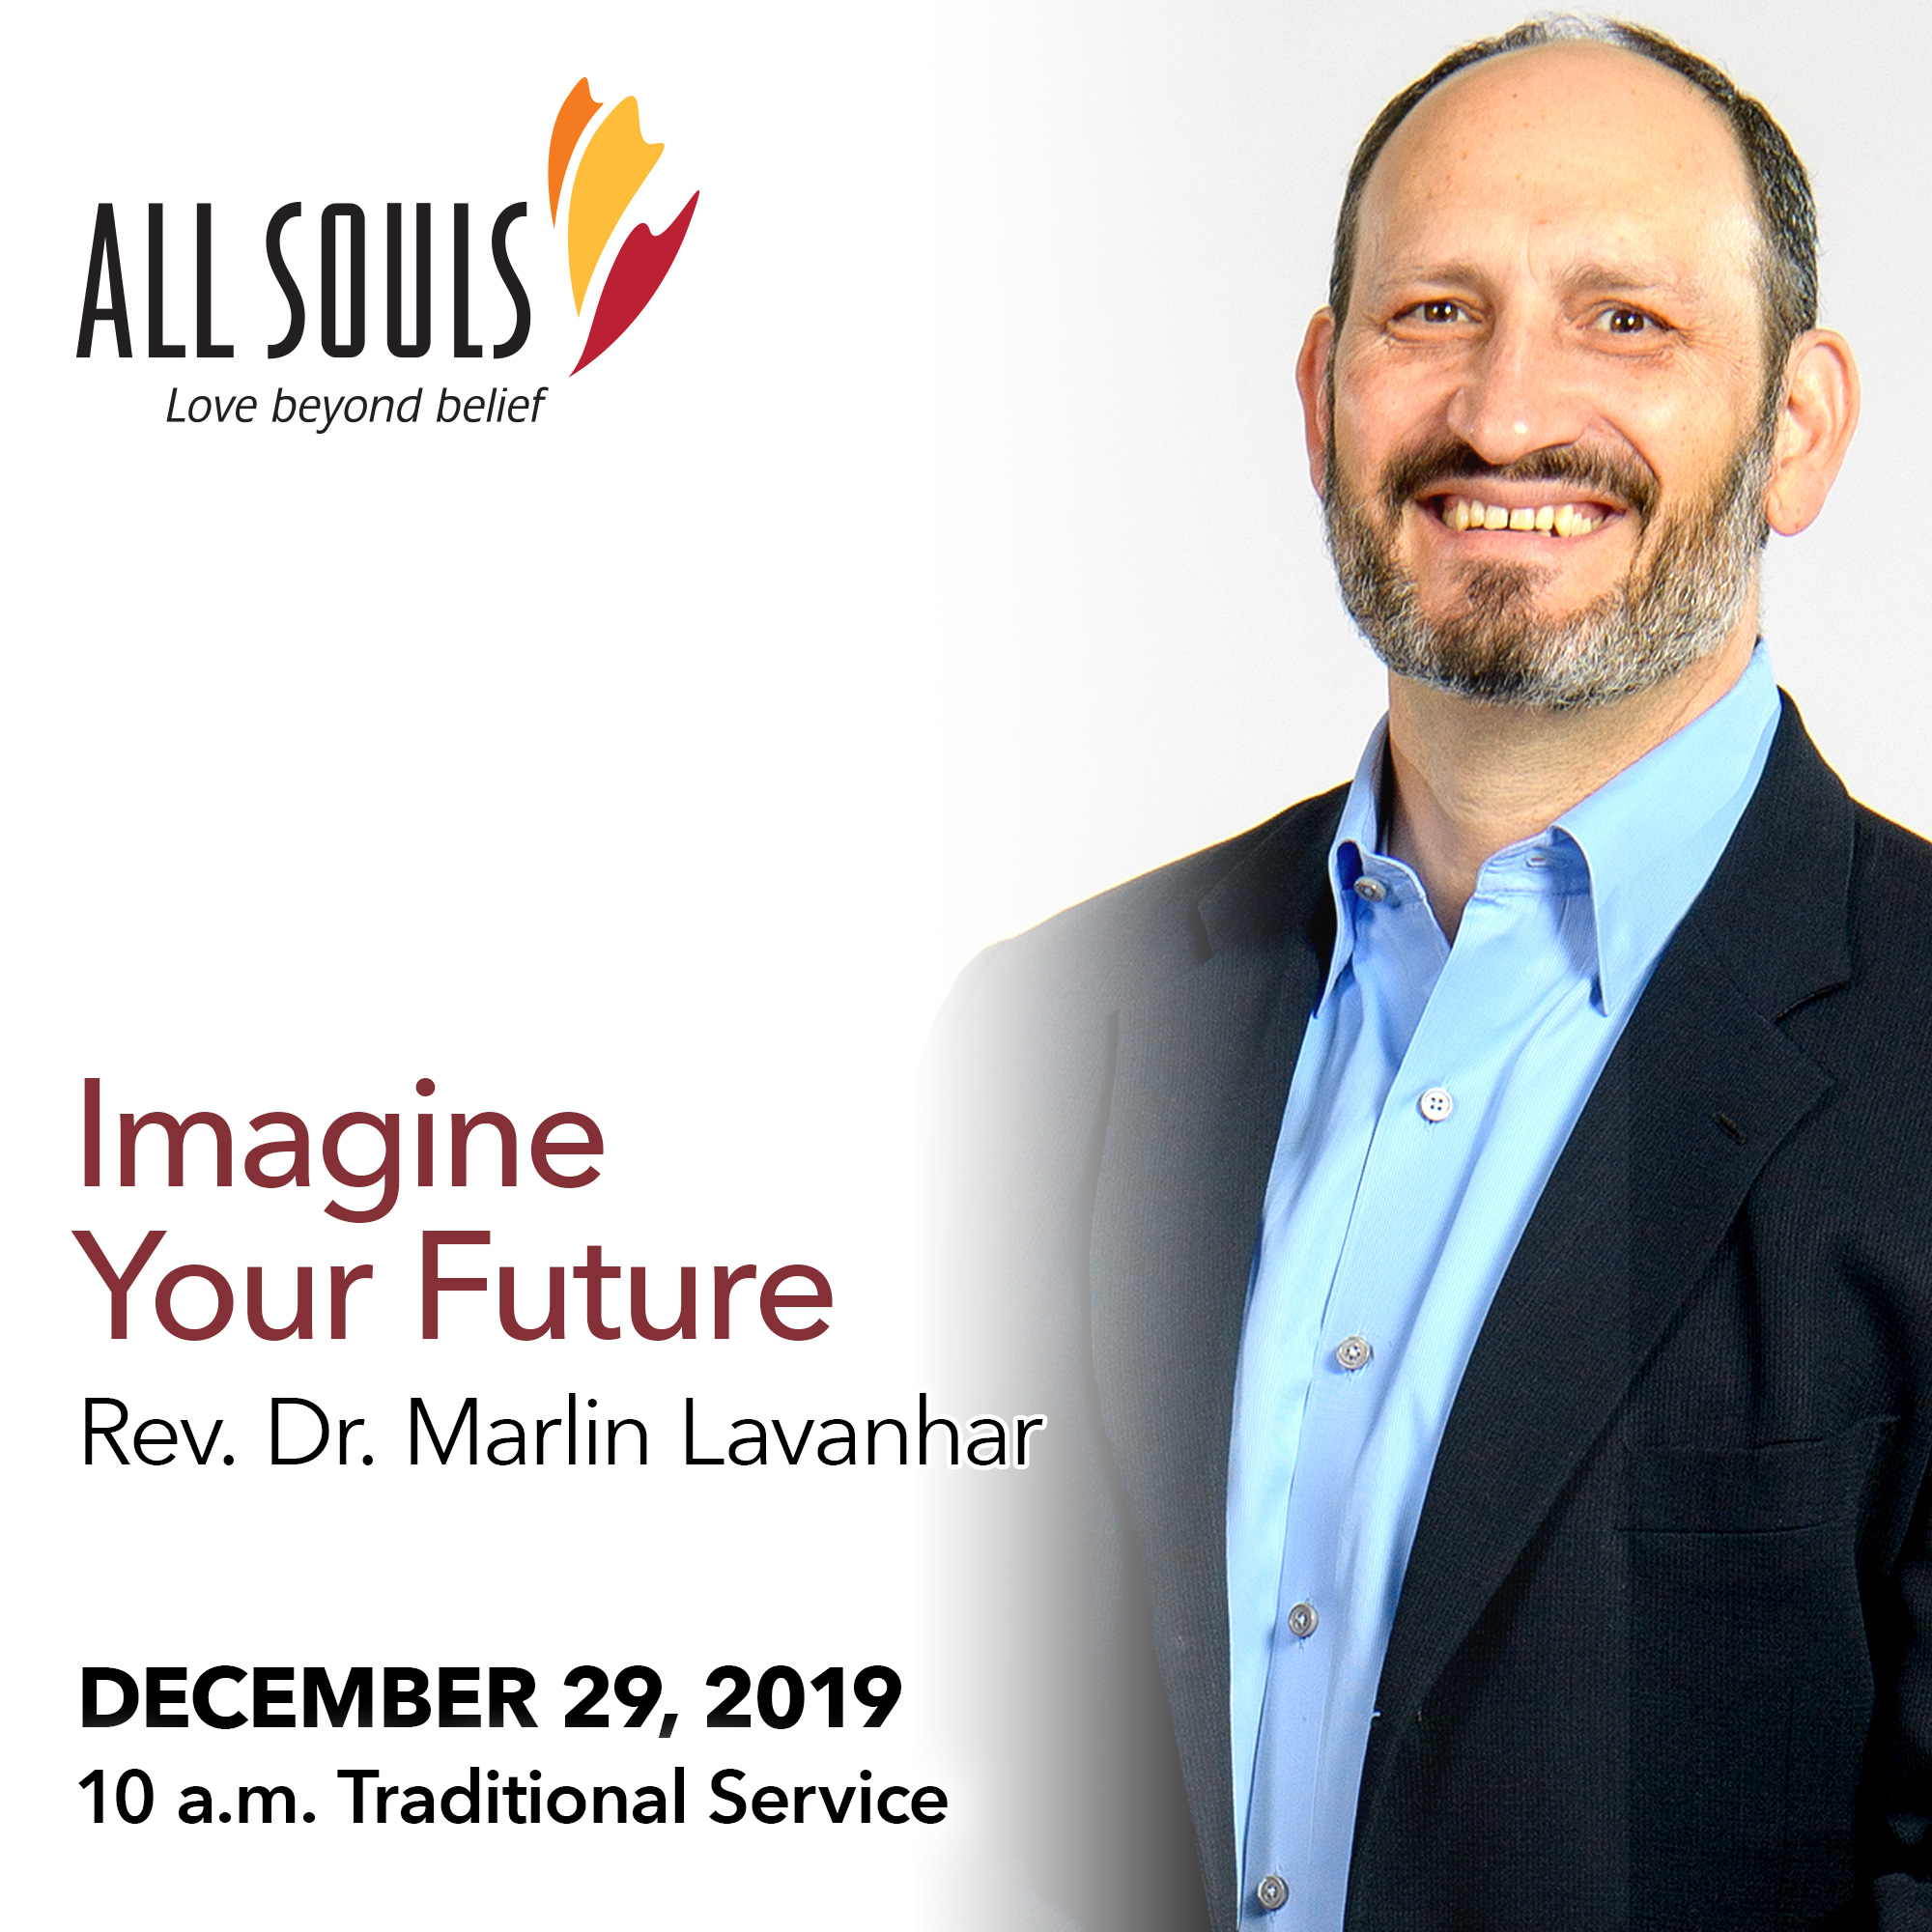 'IMAGINE YOUR FUTURE' - A sermon by Rev. Dr. Marlin Lavanhar (Traditional Service) show art